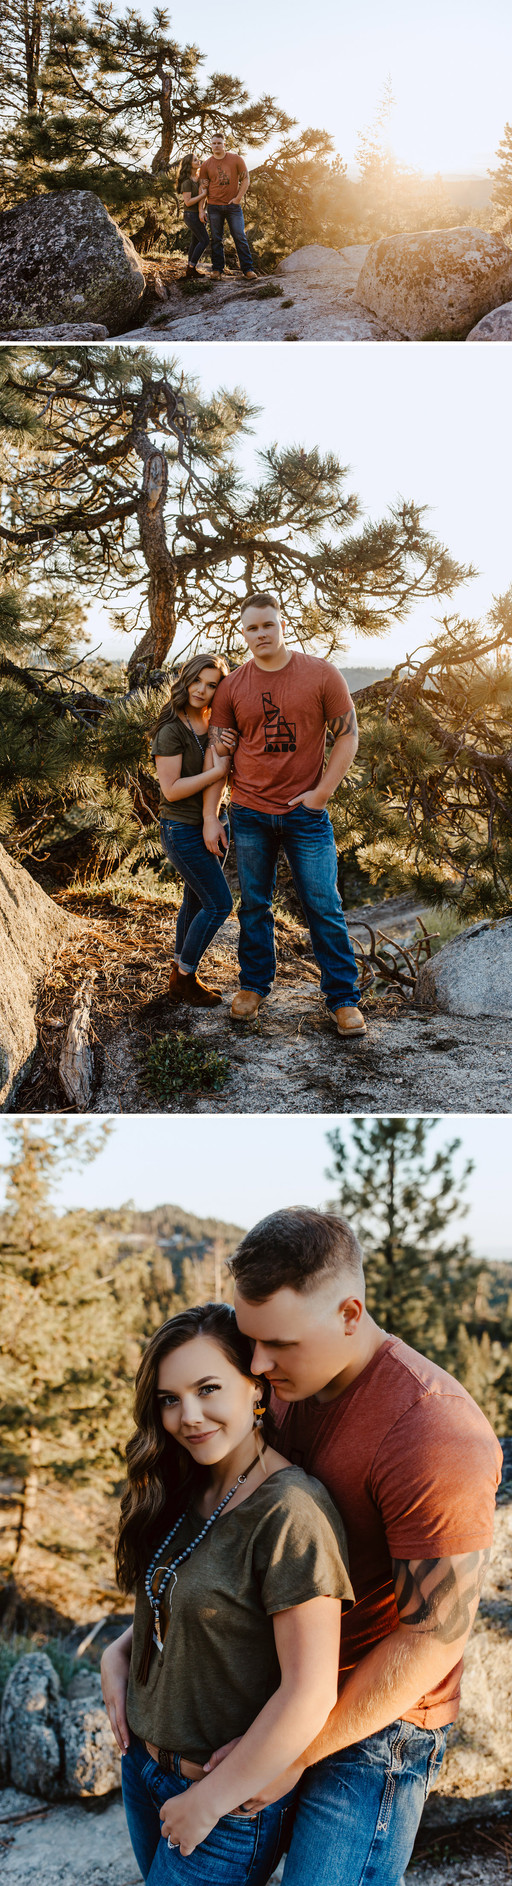 Collage of portraits of Riley Thomas wearing a red Idaho tshirt and blue jeans with wife Rylee Driscoll wearing green Idaho tshirt and jeans standing looking at the camera in front of the sunset.